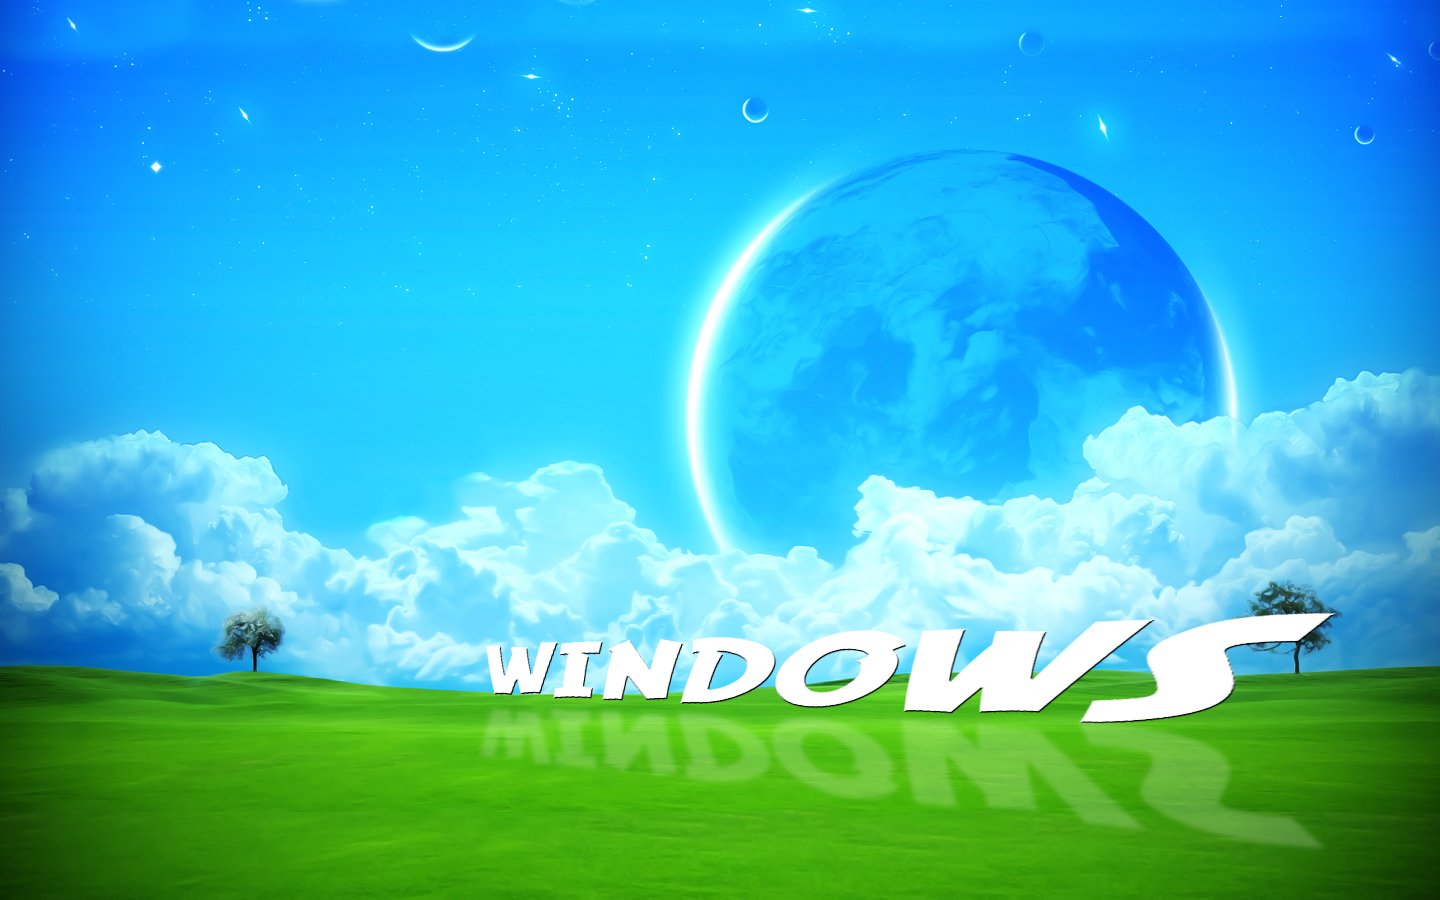 desktop animated wallpapers for windows 10 cute Wallpapers 1440x900